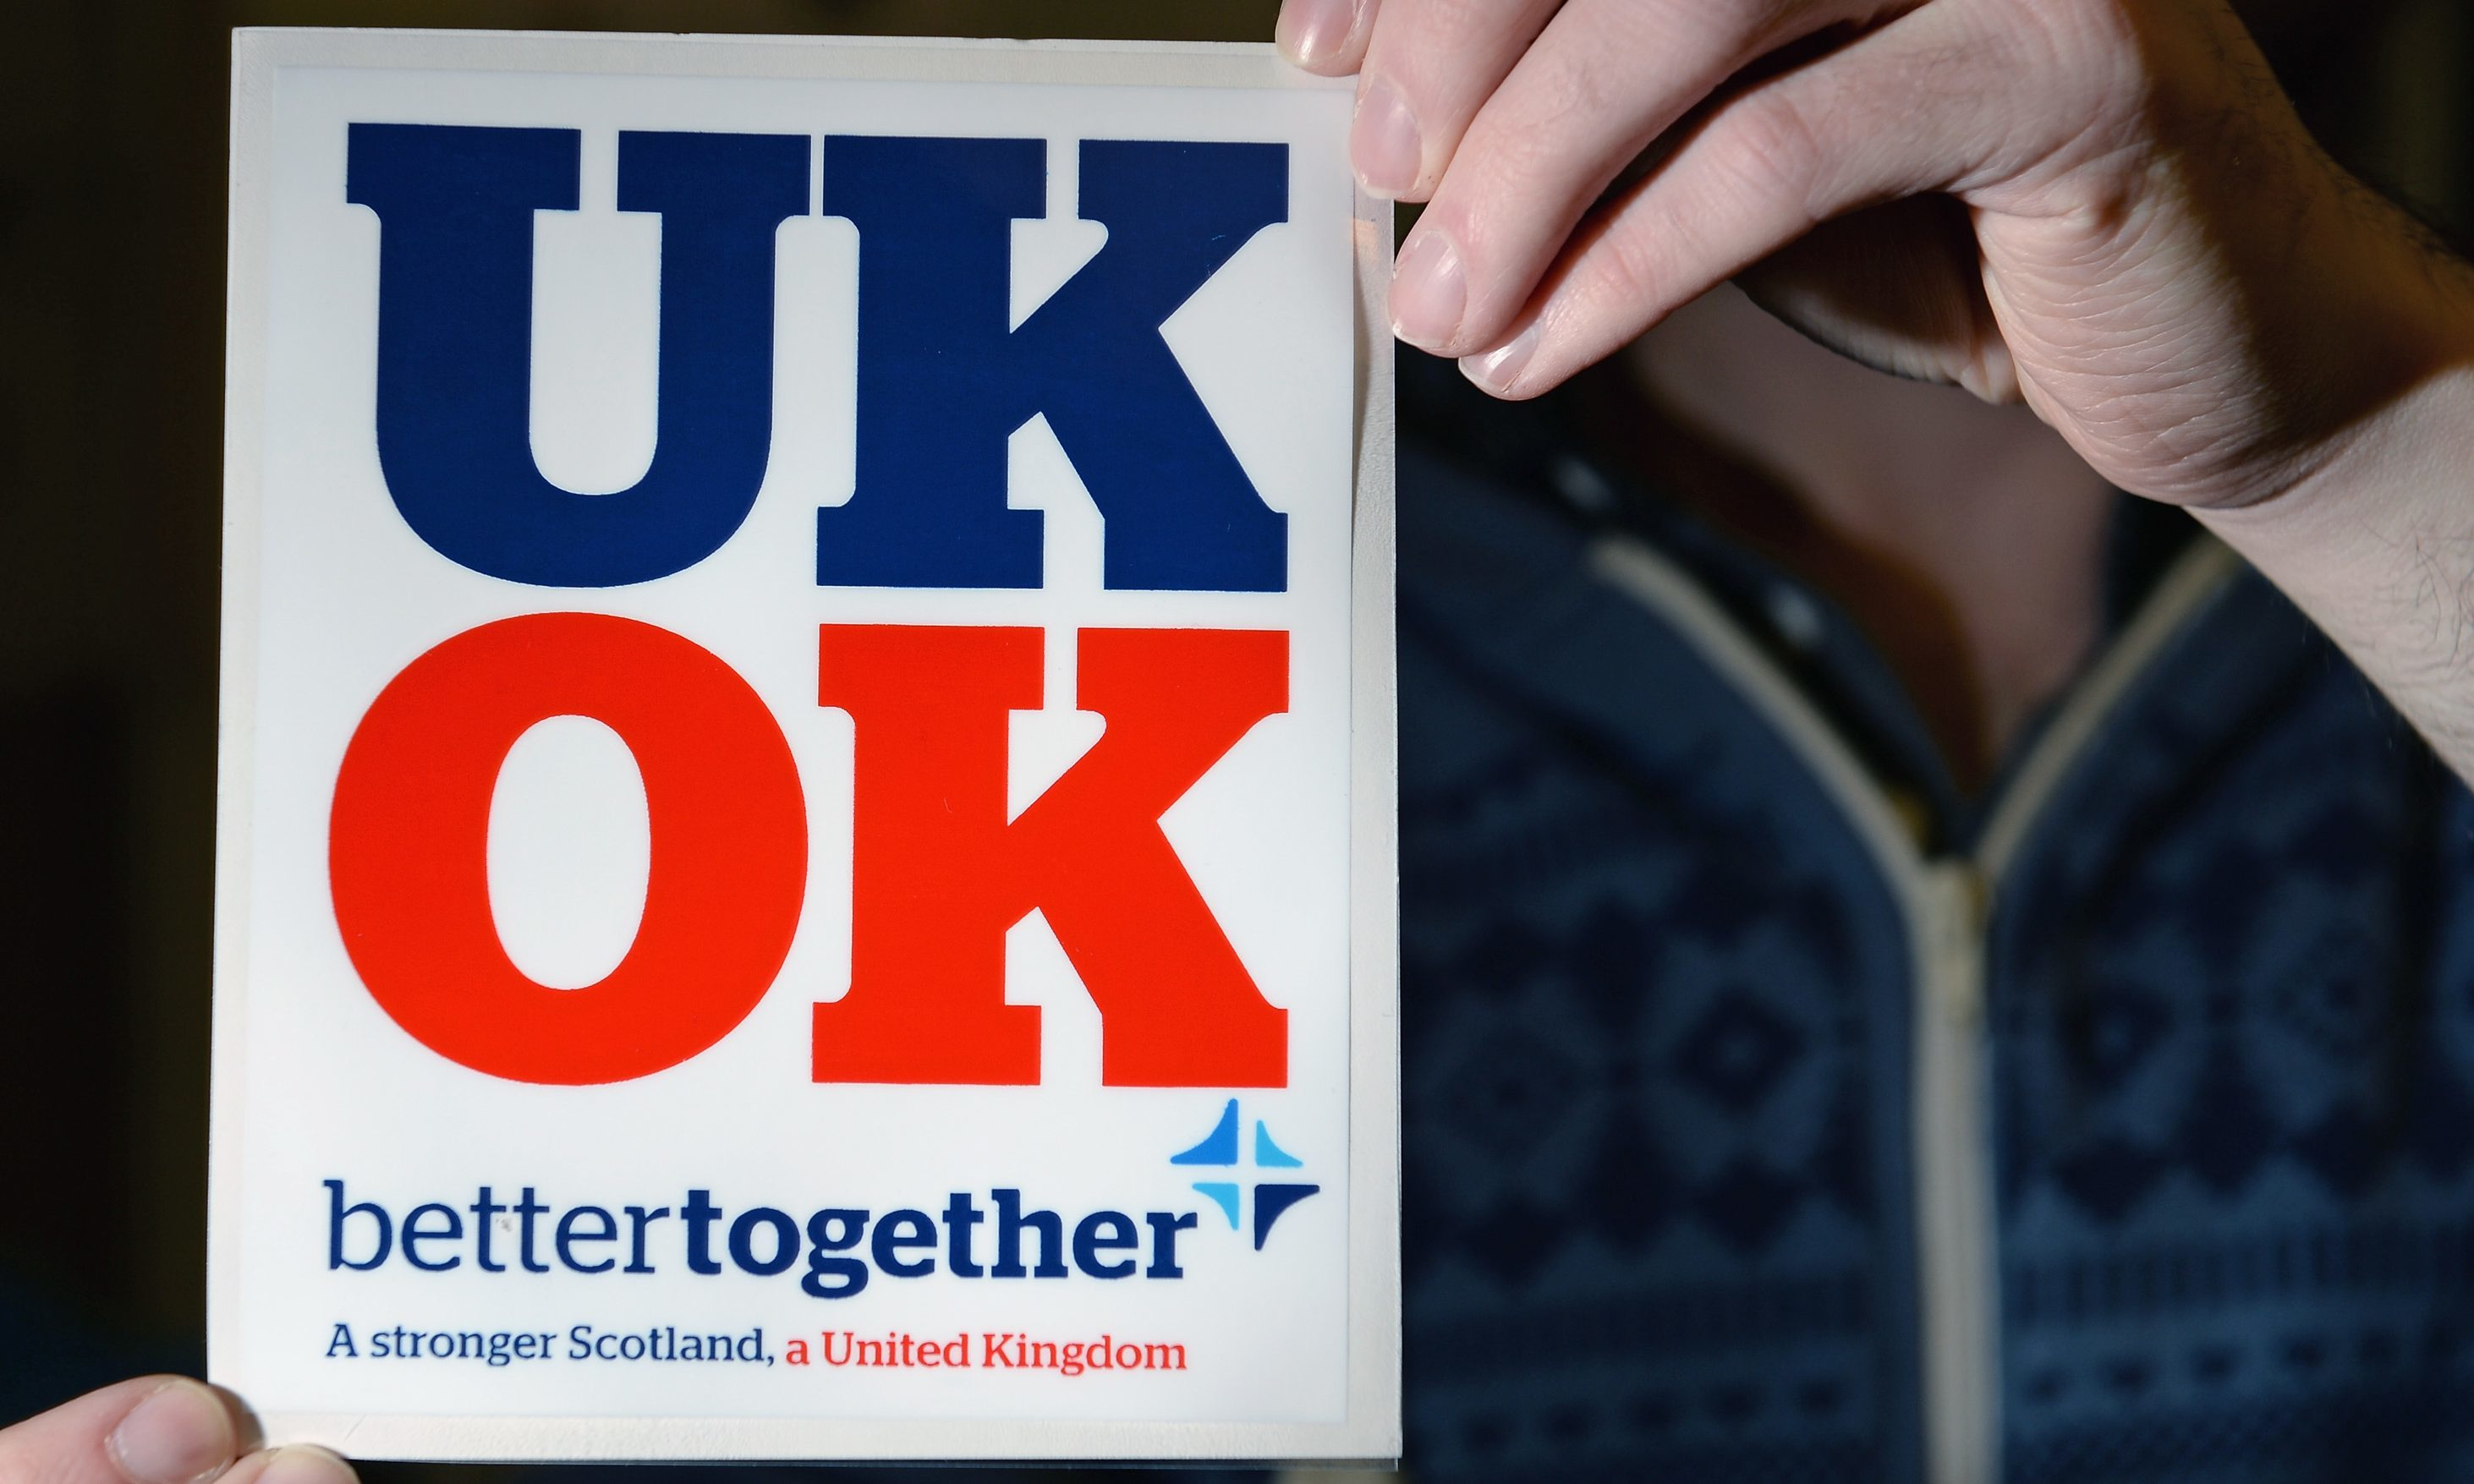 Our lead letter writer says the Better Together campaign is 'dead'.